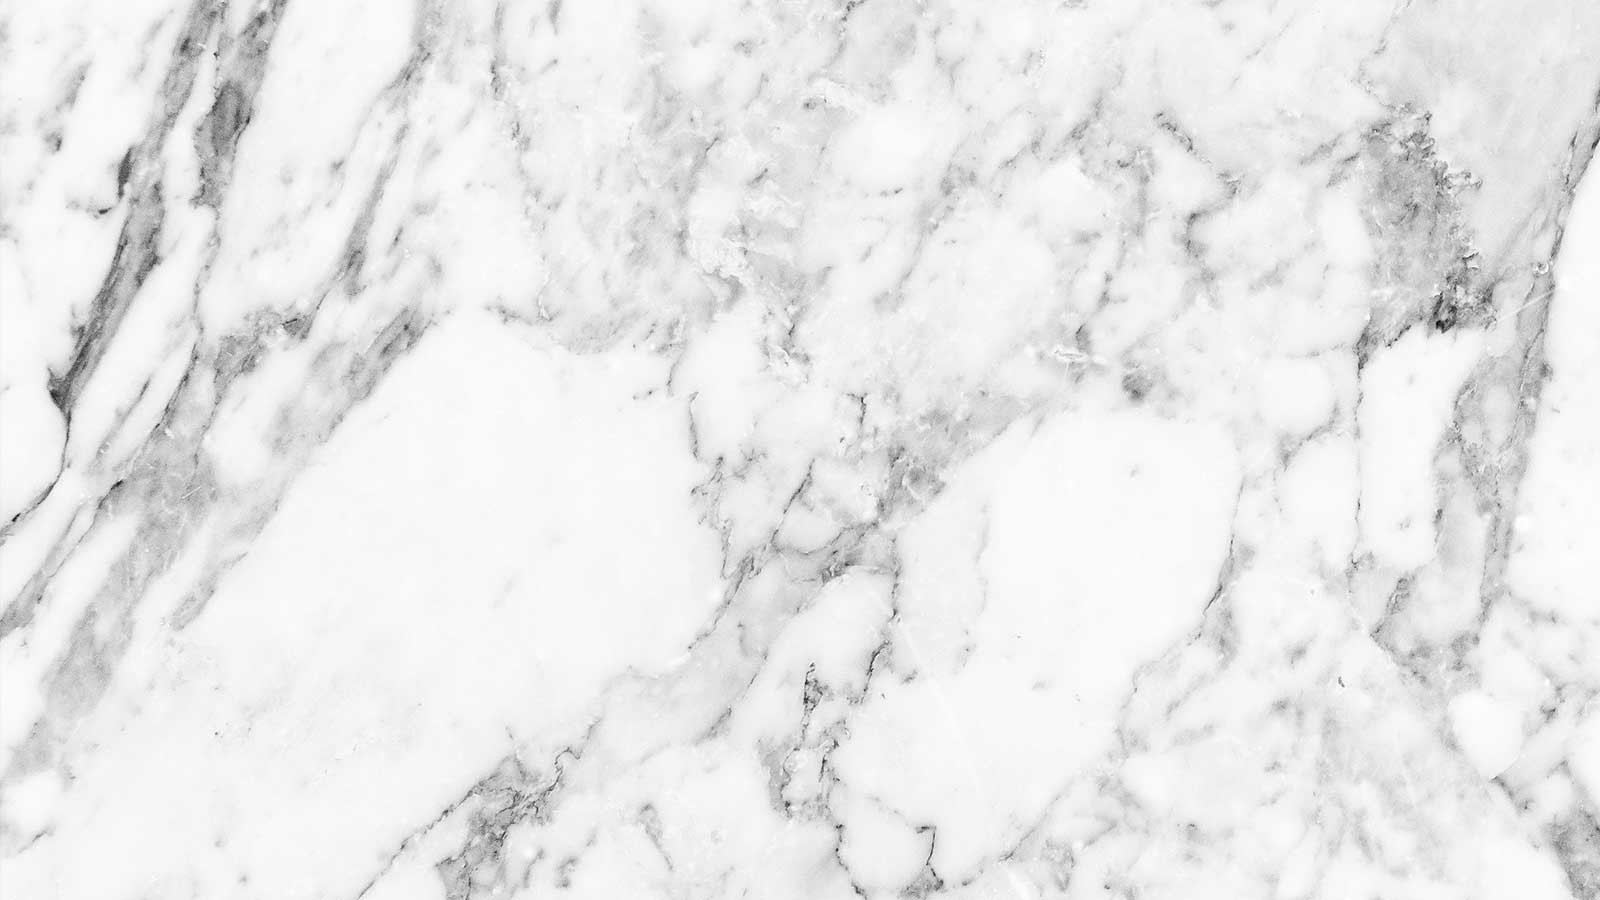 Popular Wallpaper Marble Black And White - white-marble-wallpaper-19  Best Photo Reference_47585.jpg?fit\u003d1440%2C810